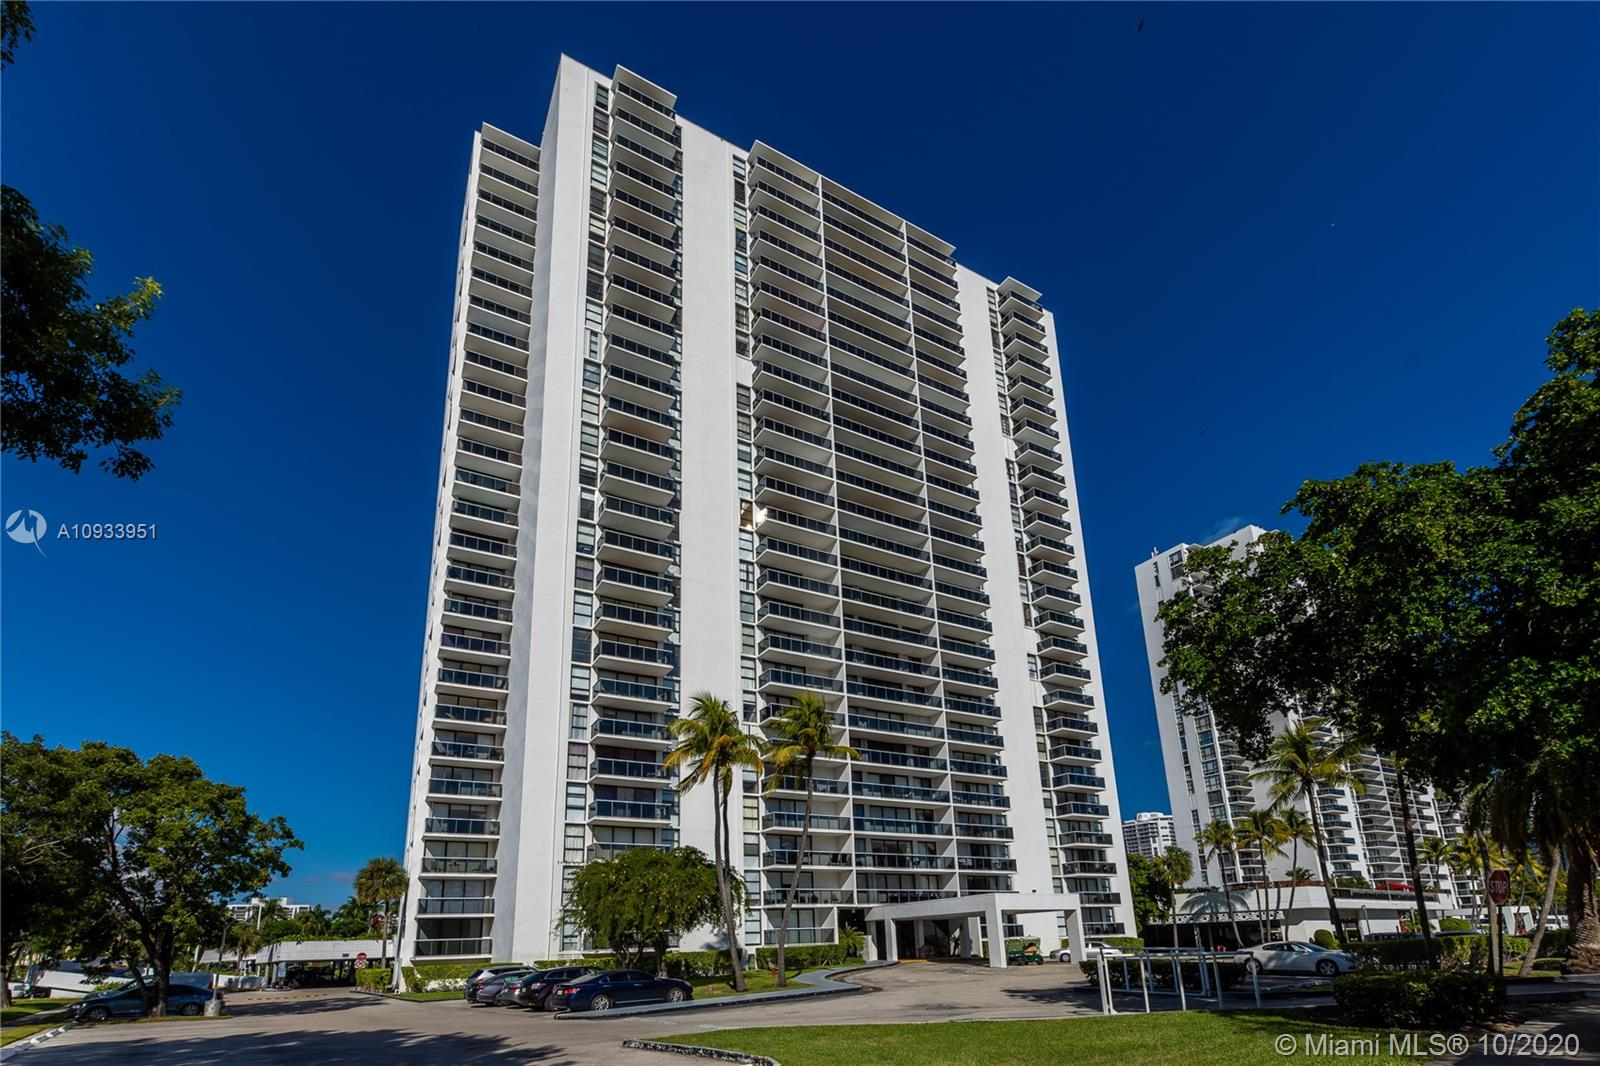 Eldorado Tower One #1503 - 3625 N COUNTRY CLUB DR #1503, Aventura, FL 33180